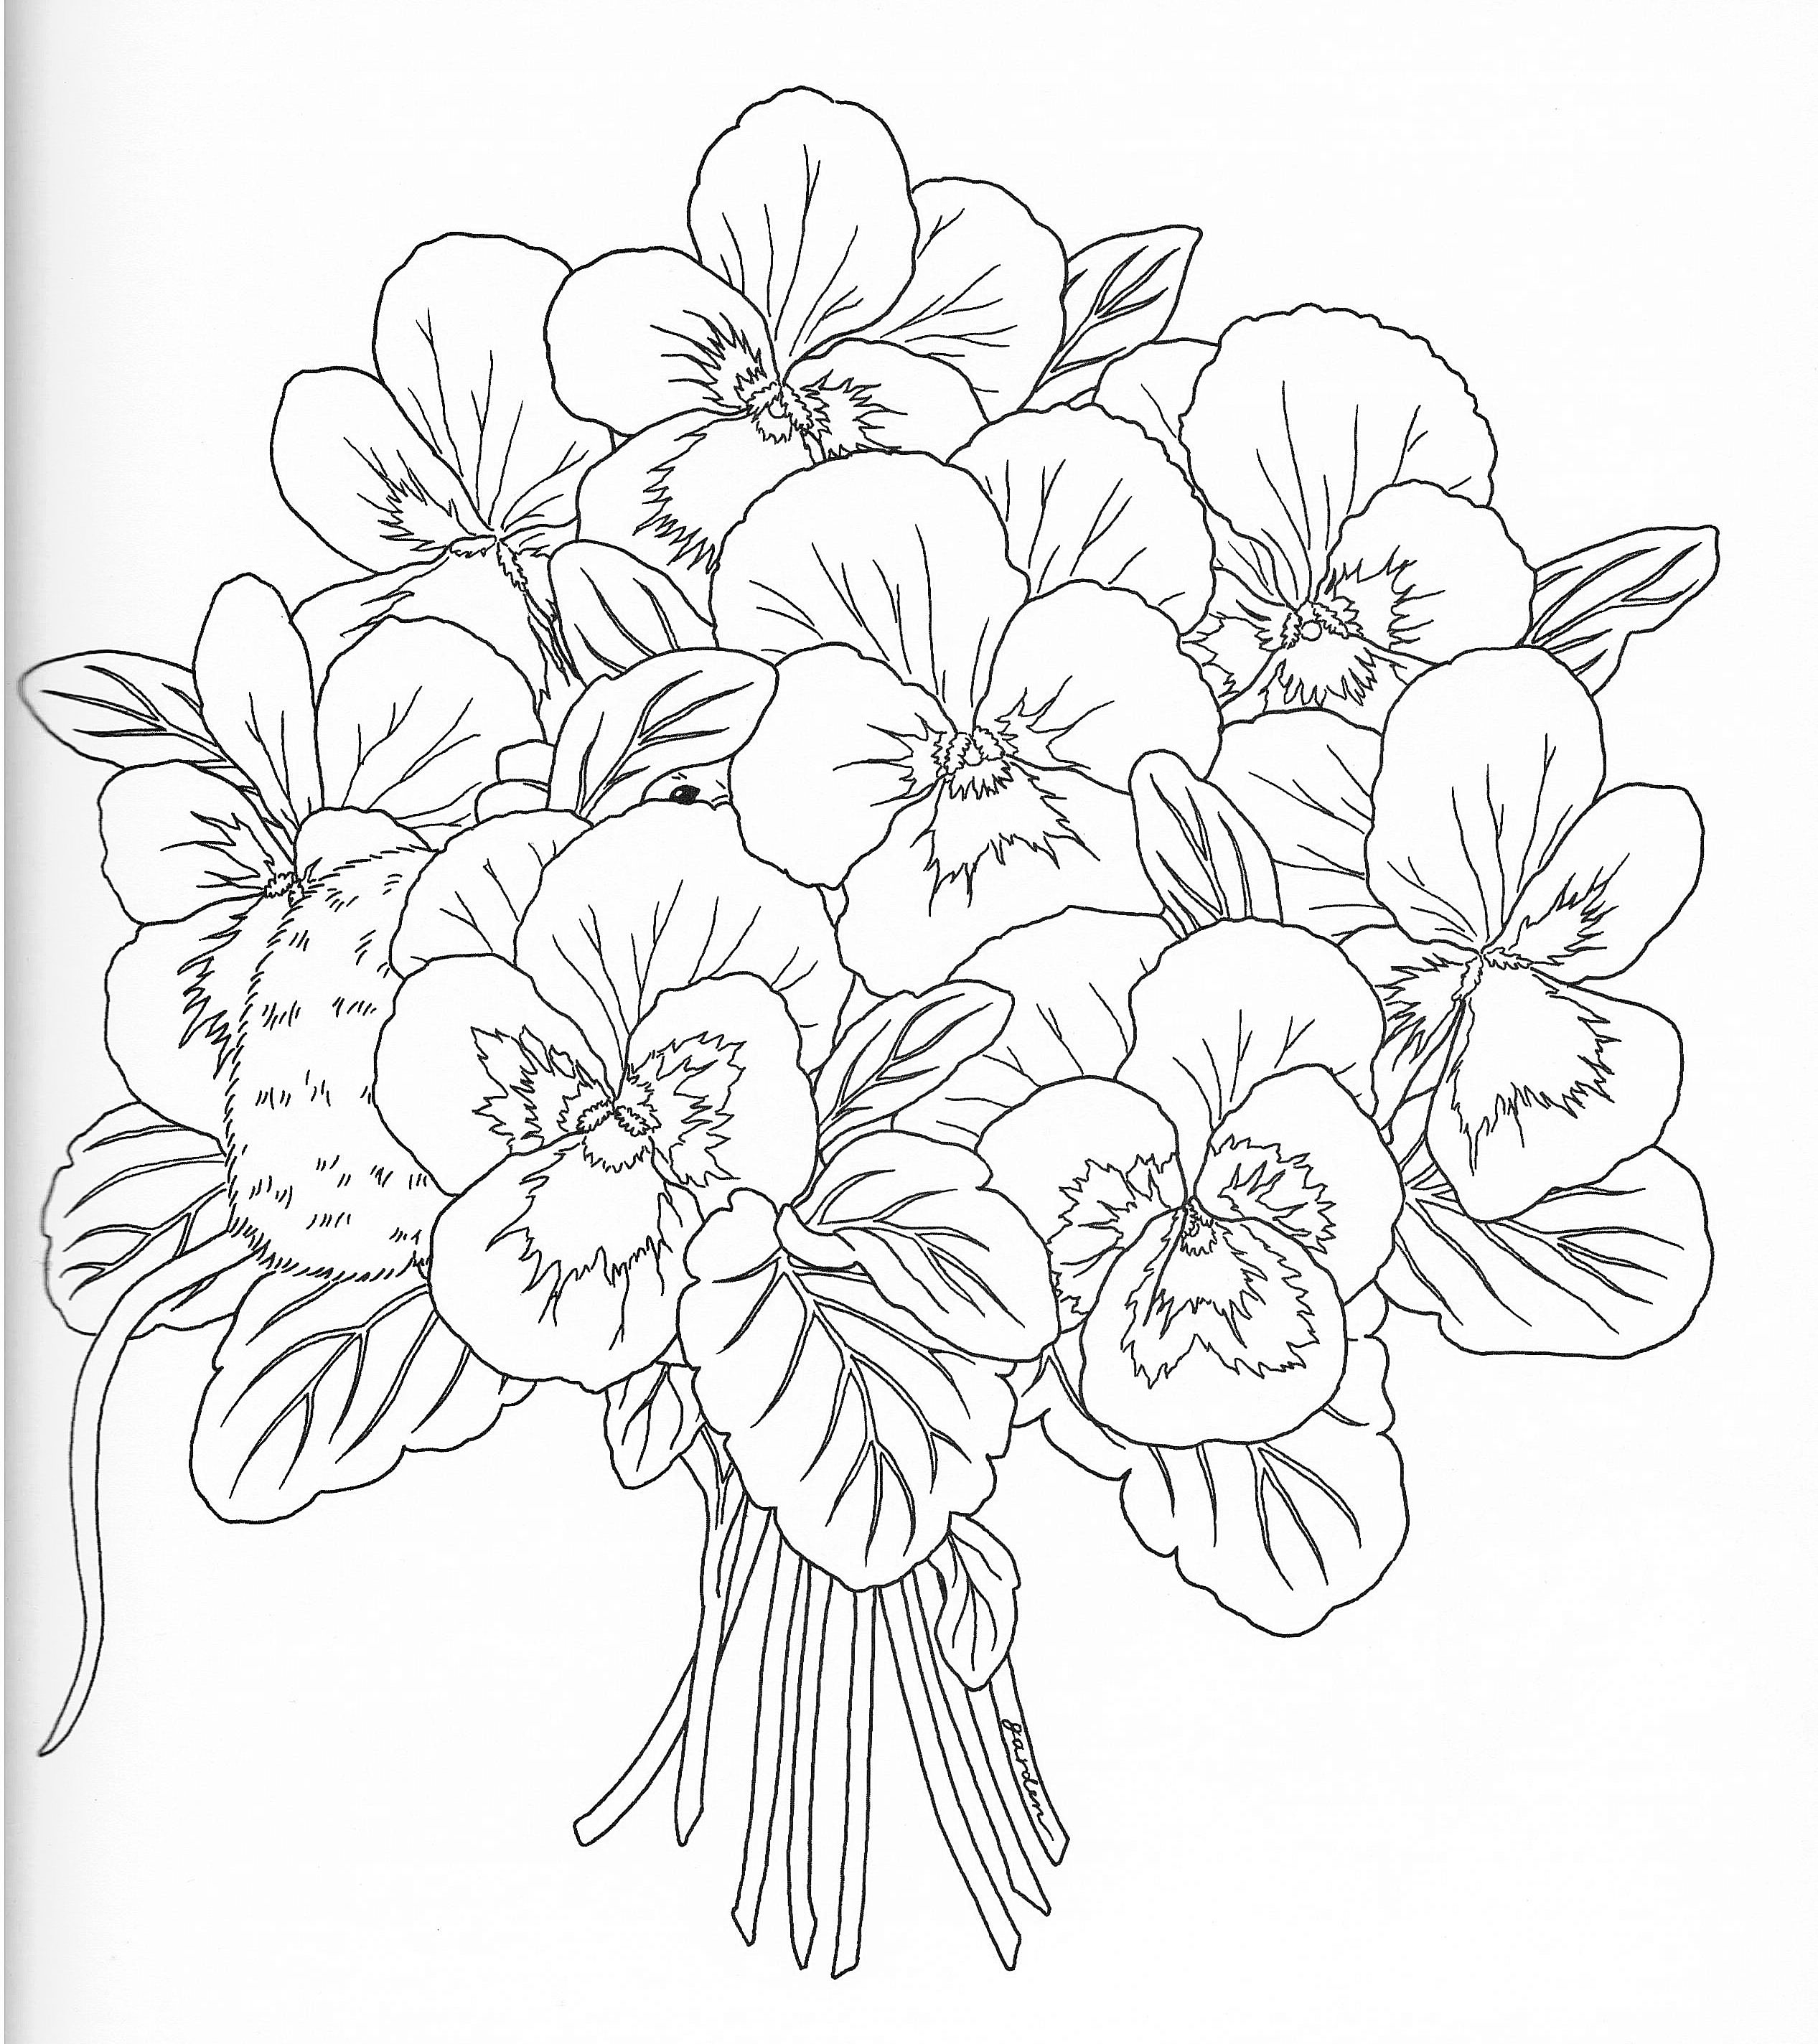 Harmony Nature Adult Coloring book Pg